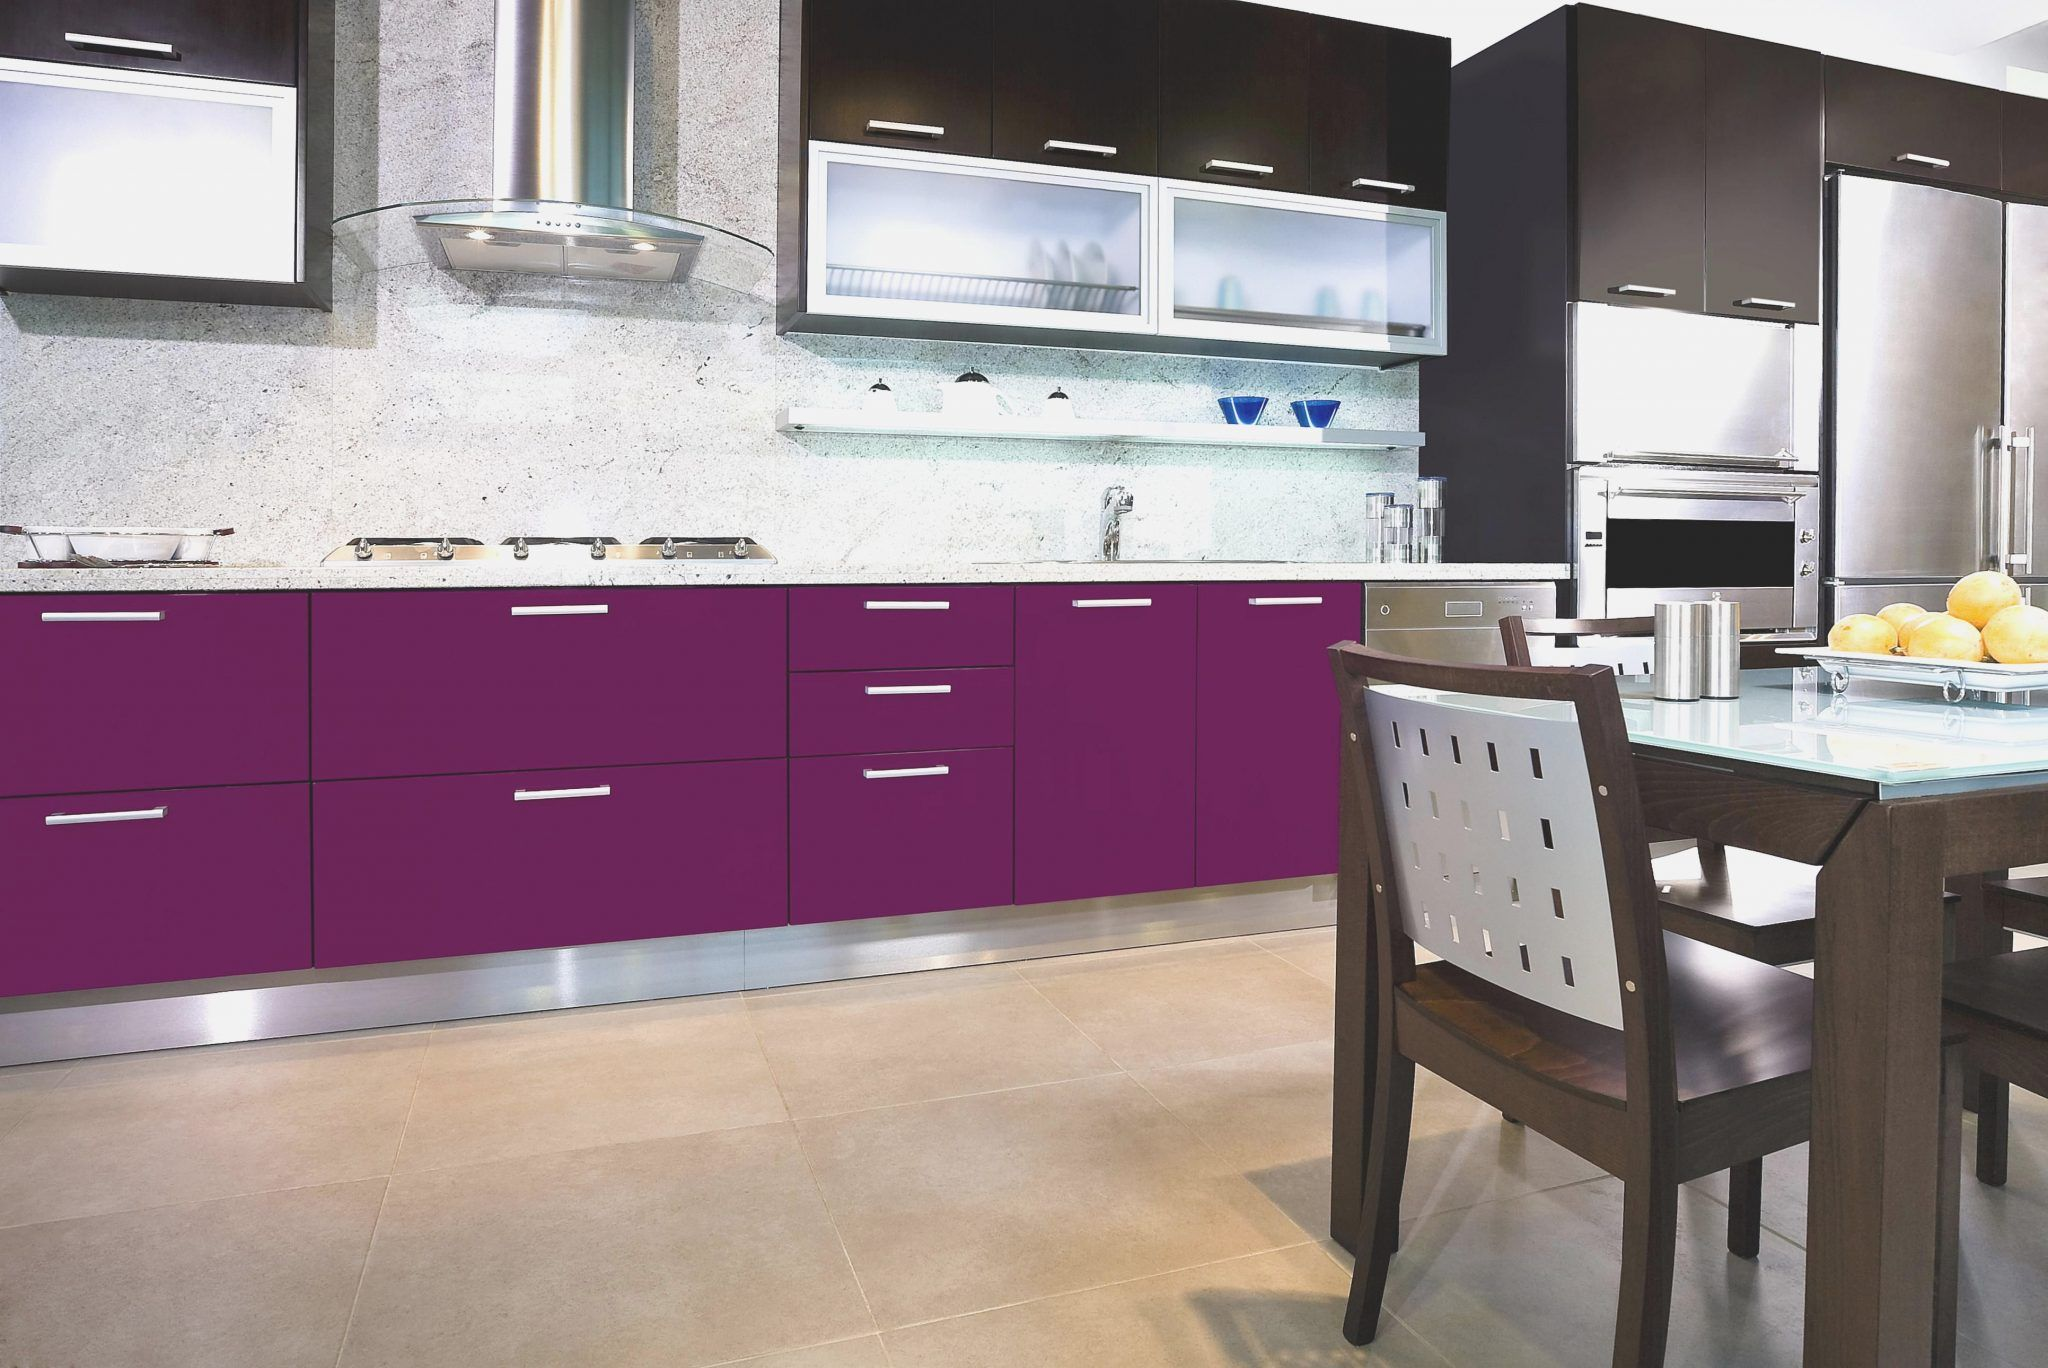 Kitchen Design Ideas For Small Kitchens   Indian Kitchen Design Ideas For Small  Kitchens, Kitchen Design Ideas For Small Kitchens Nz, Kitchen Designs For  ...